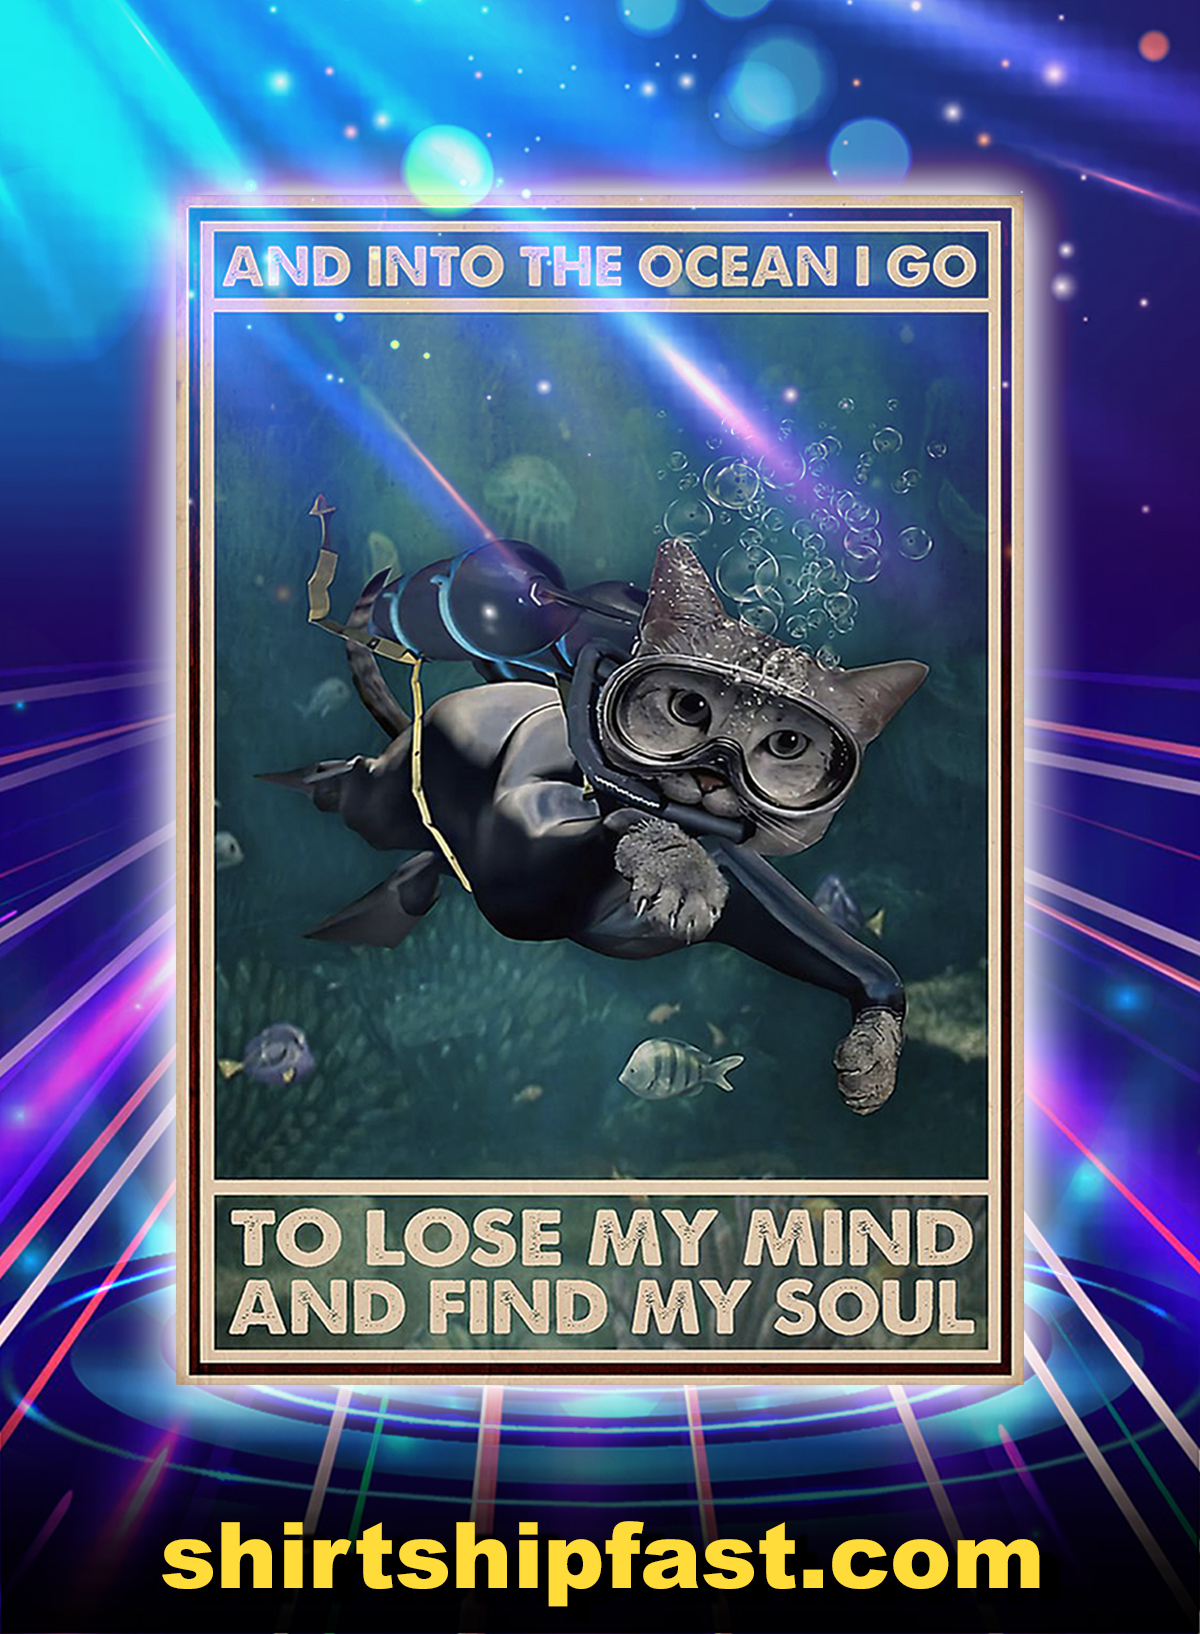 Scuba diving cat and into the ocean i go to lose my mind and find my soul poster - A1